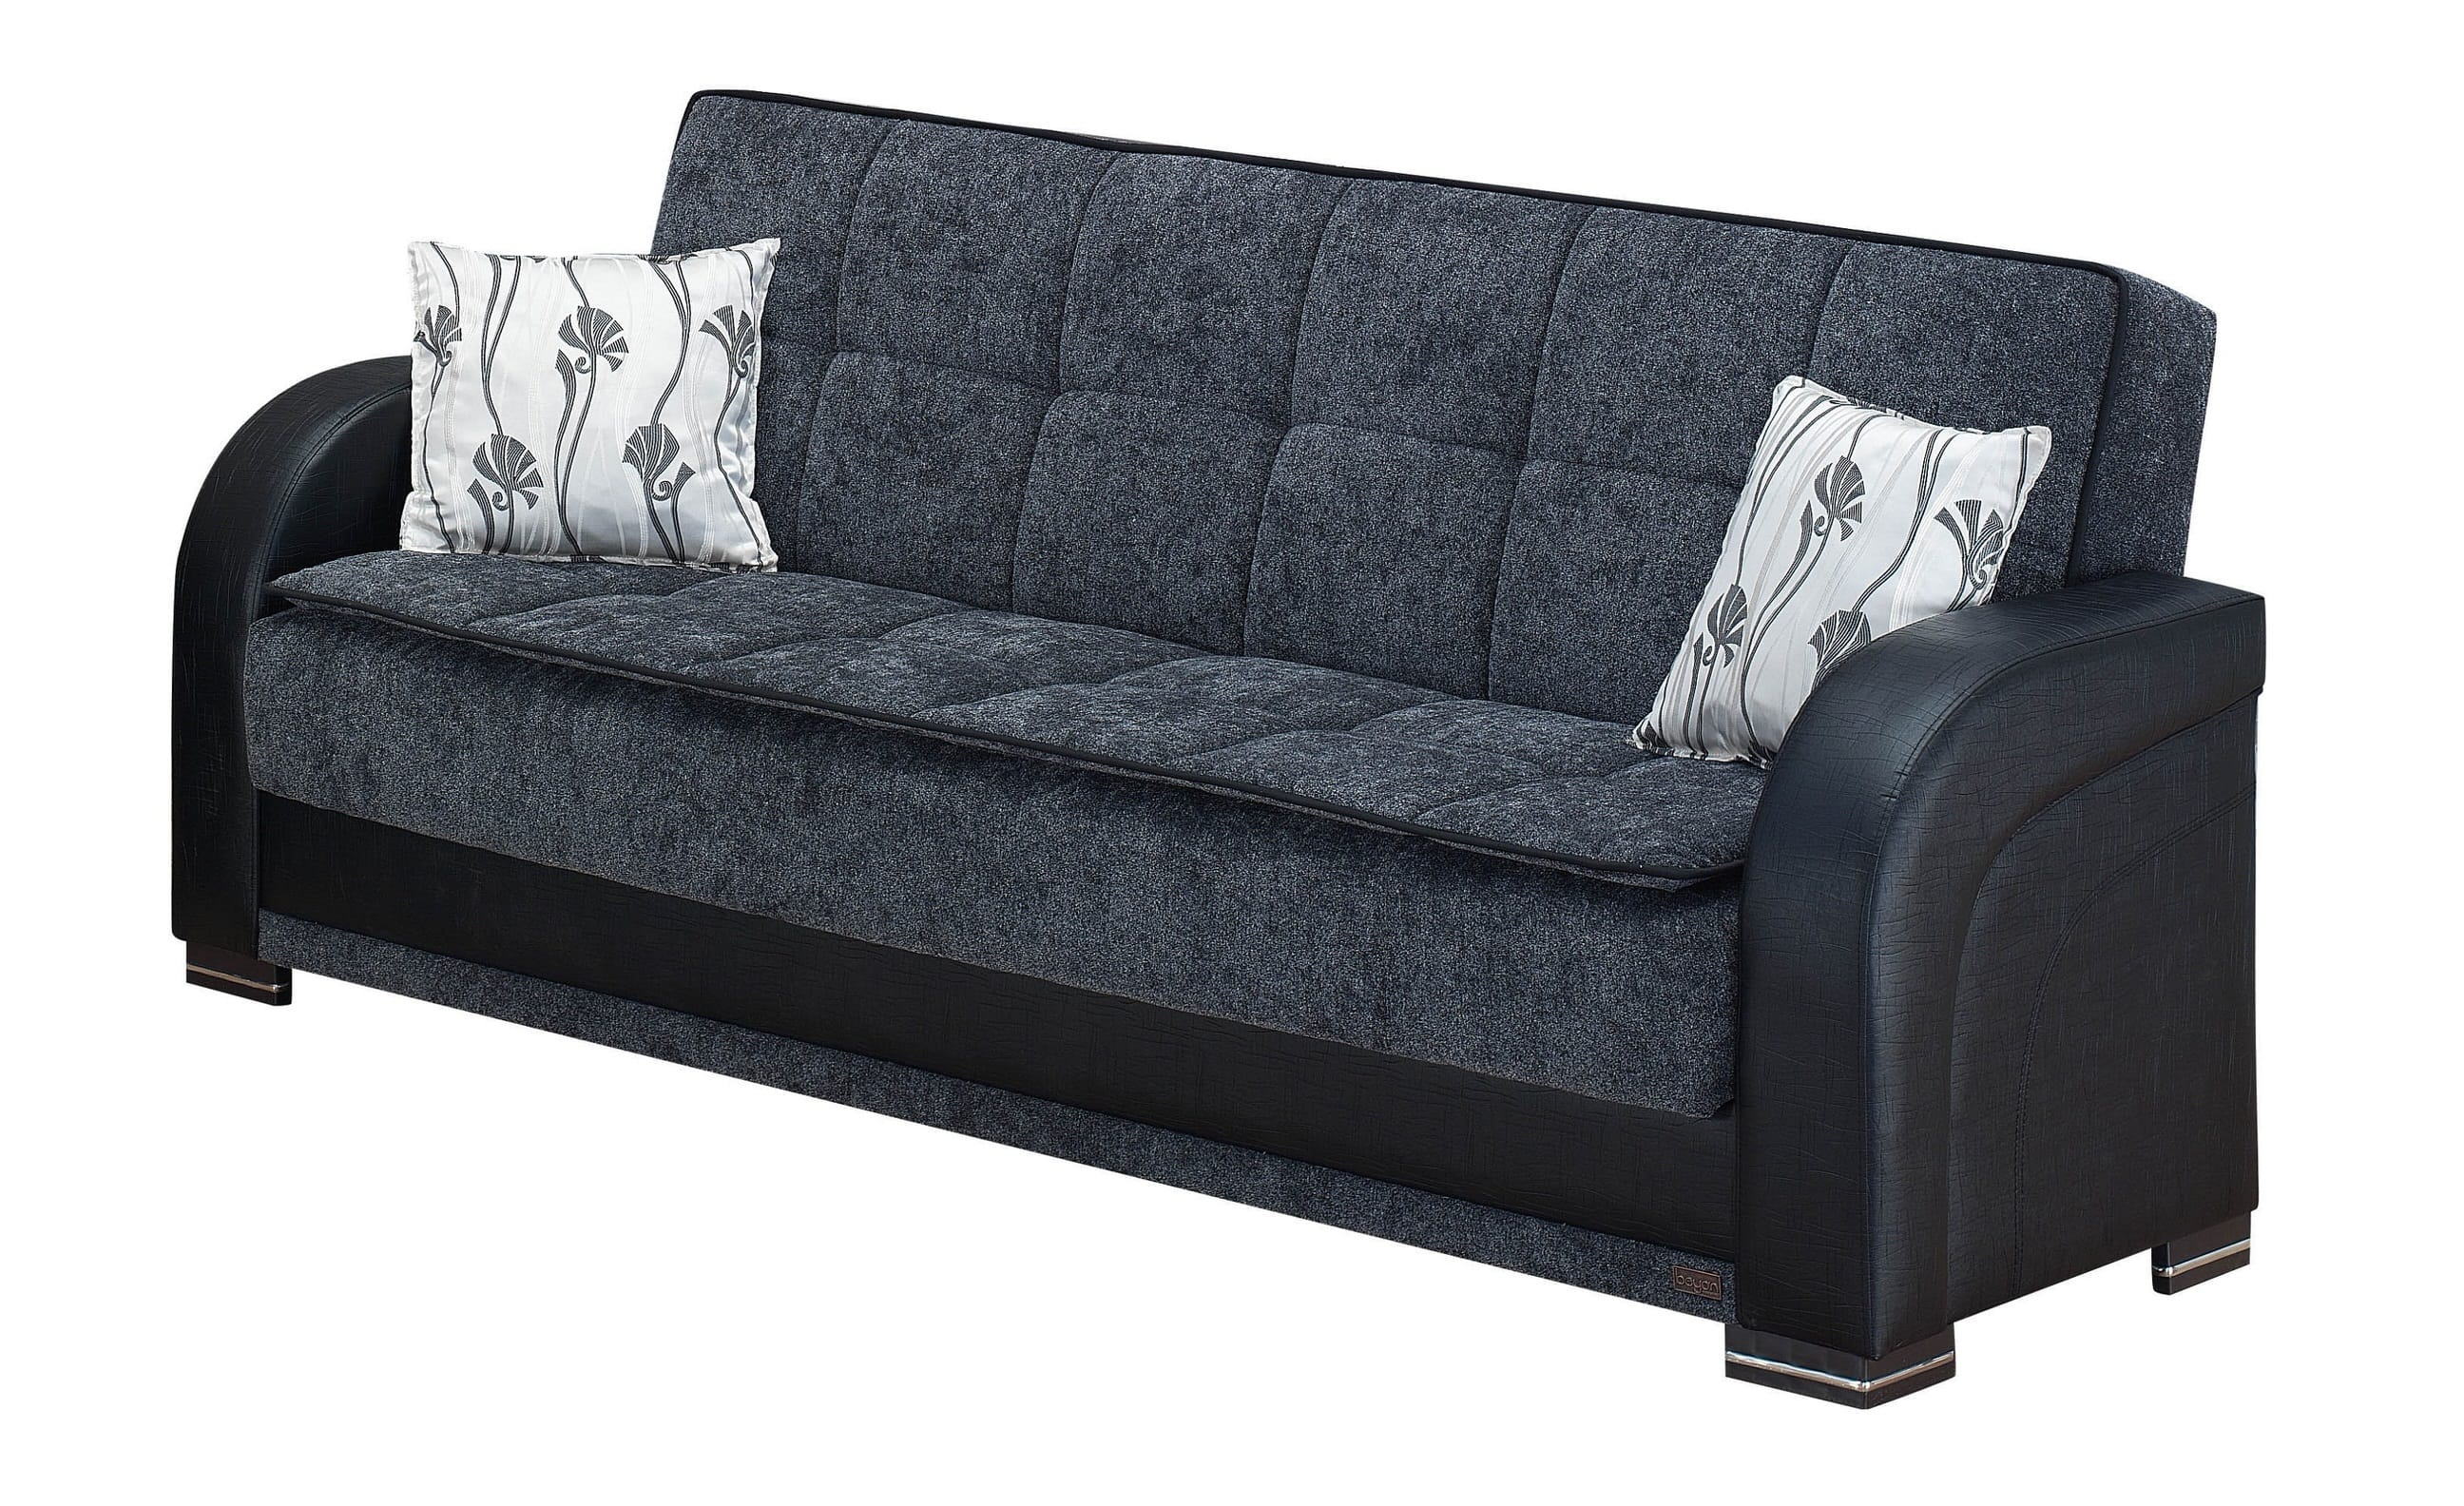 Oklahoma sofa bed by empire furniture usa for Sofa bed name